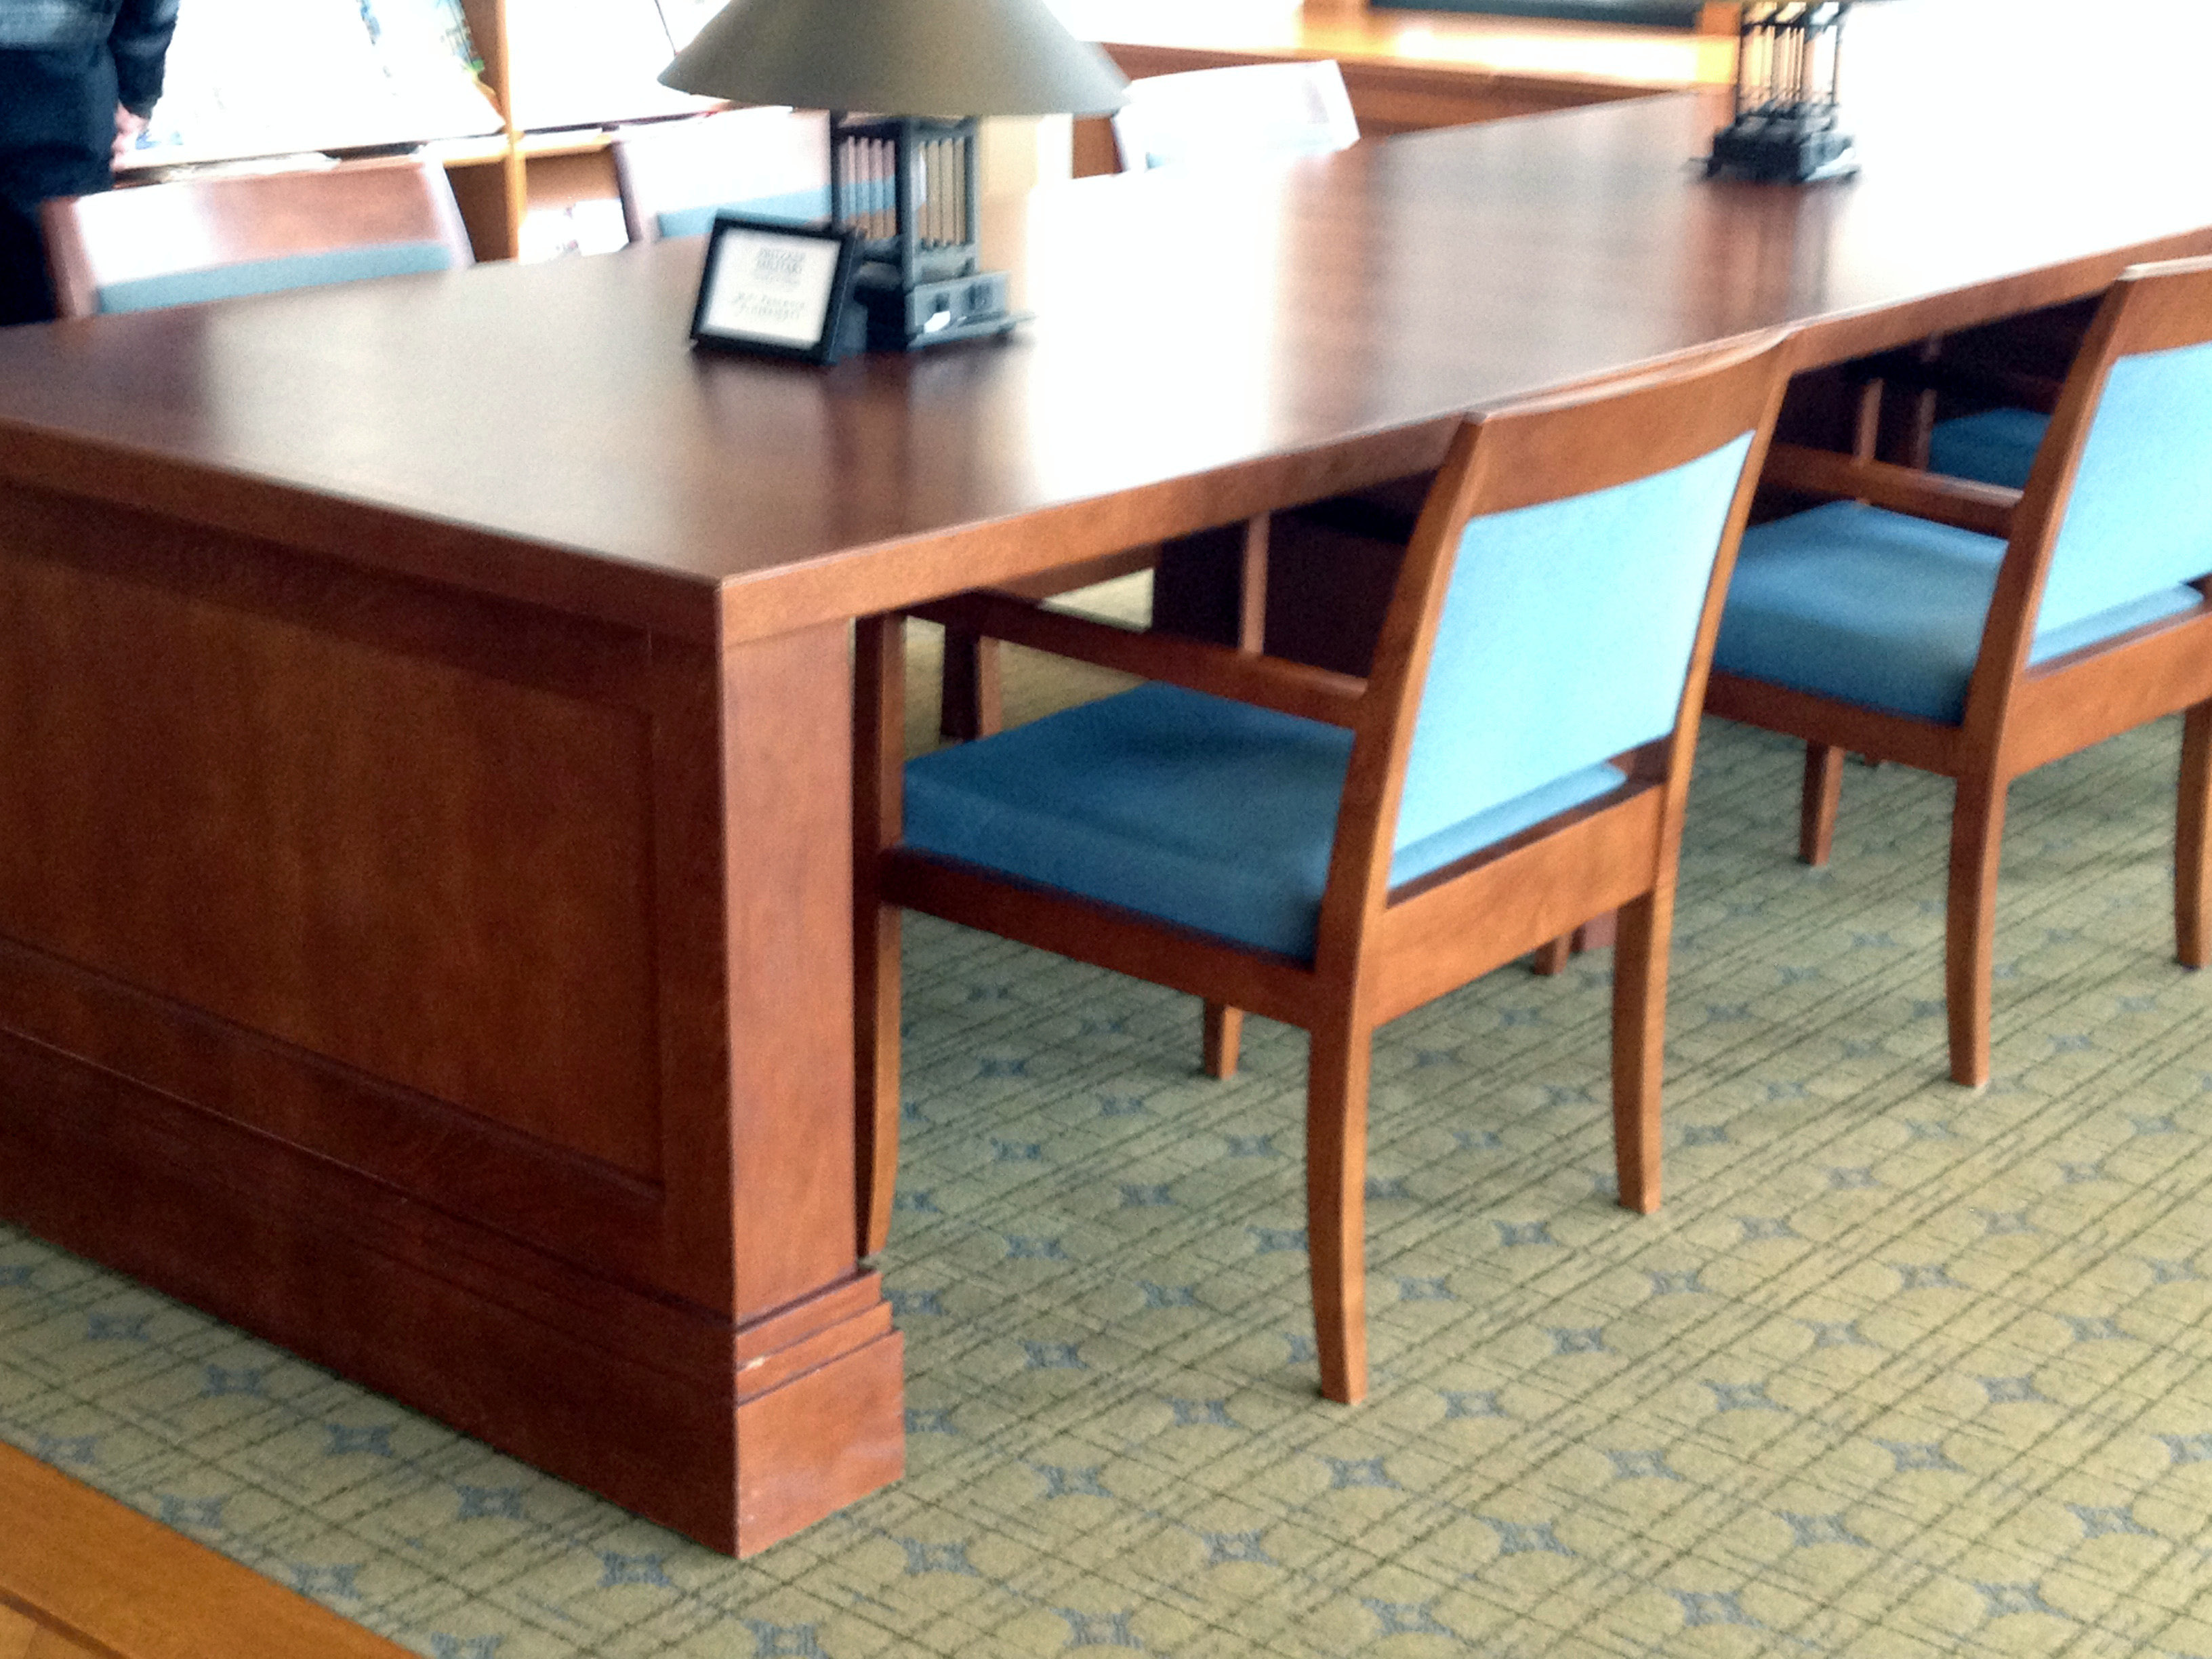 Pritzker Table Chairs